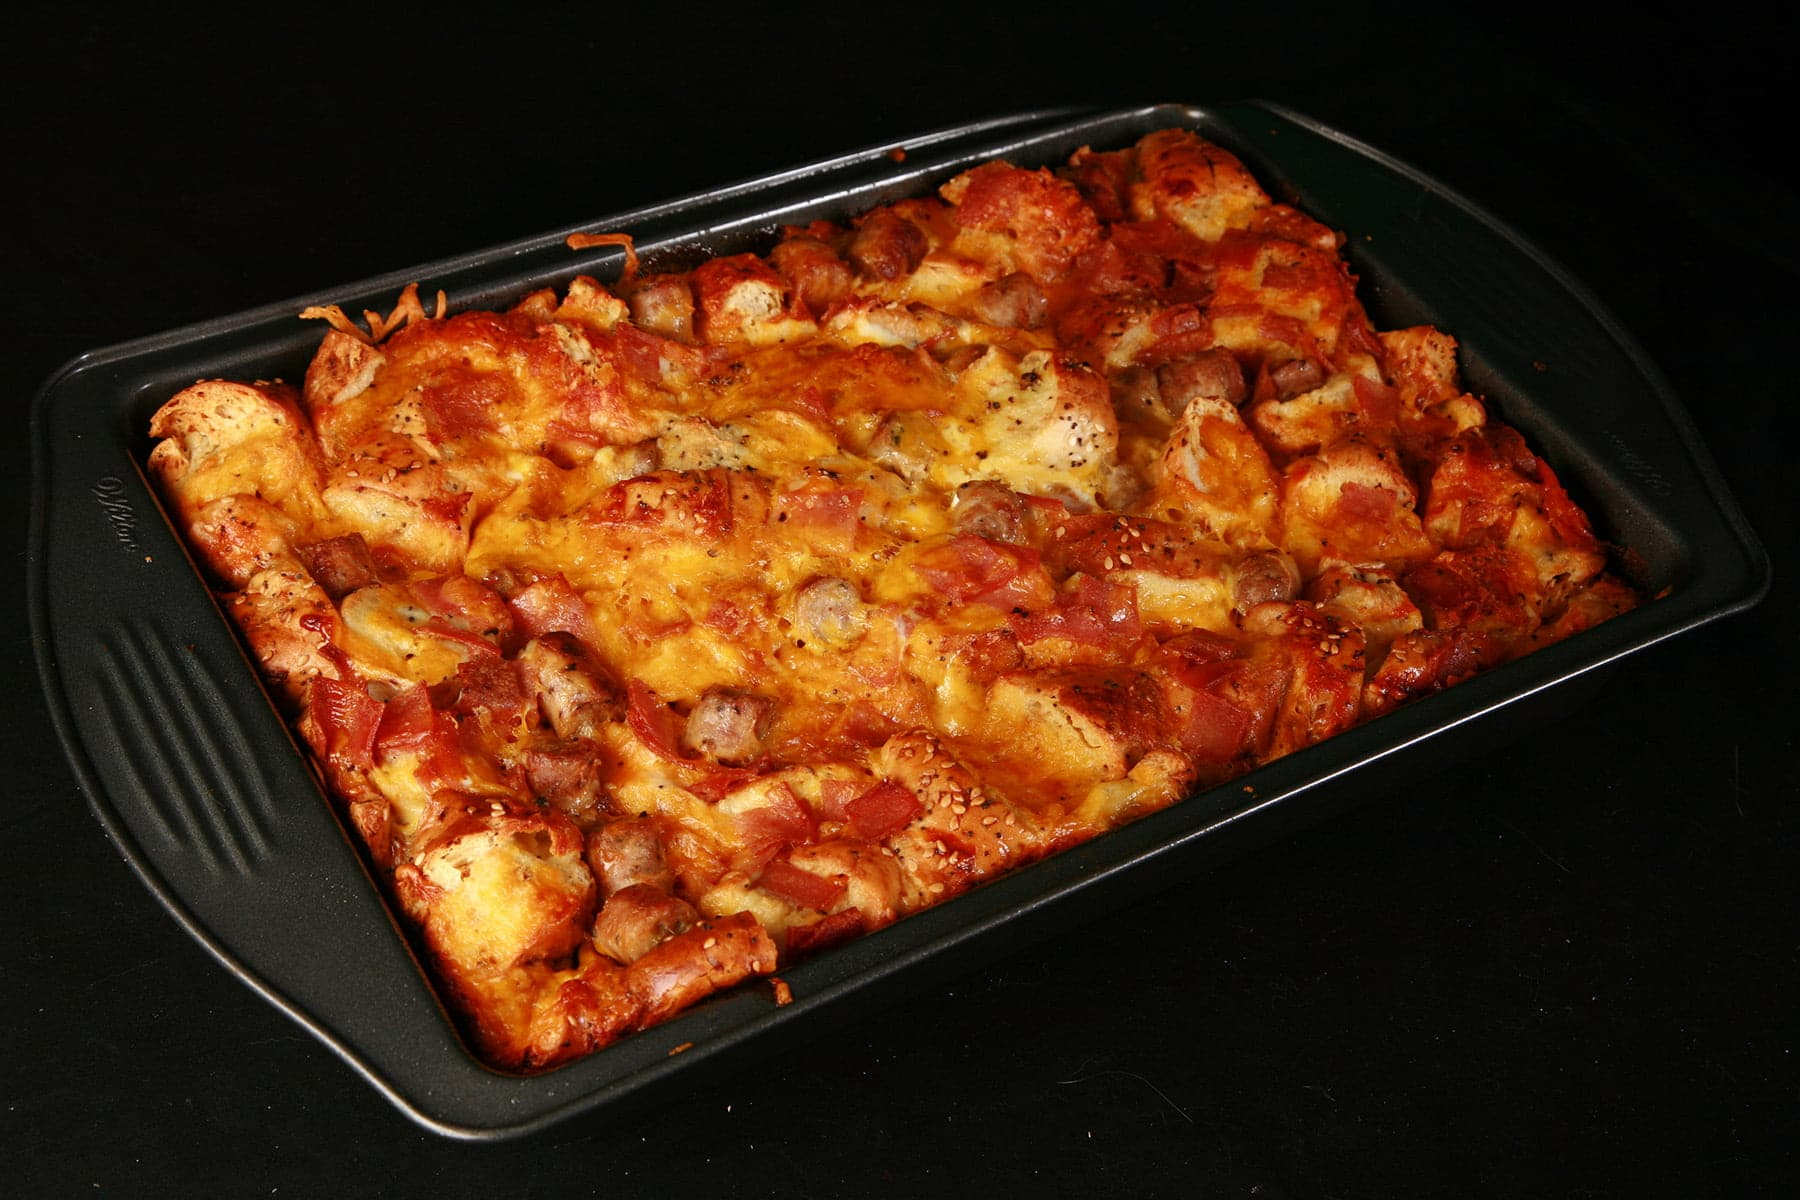 A whole pan of breakfast bagel casserole, fresh out of the oven. It has cooked to a golden brown colour.